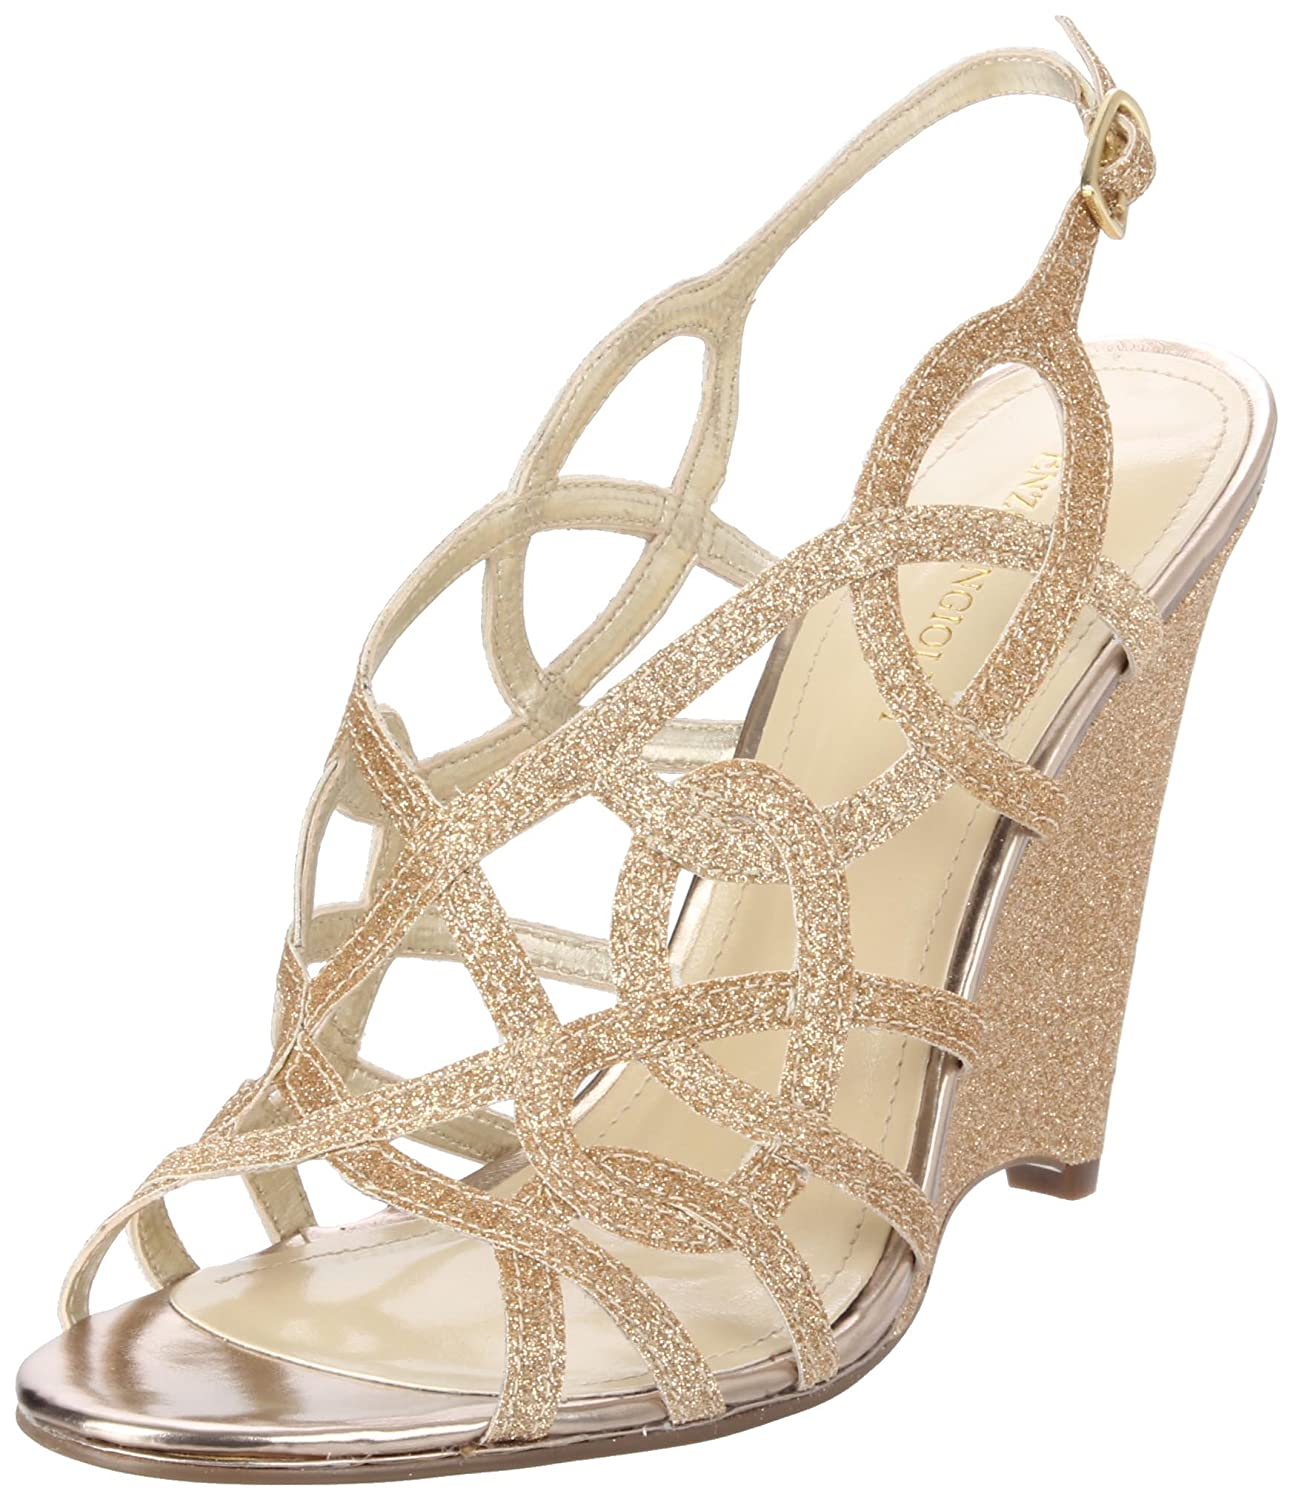 Gold / Ivory Wedges For Outdoor Wedding - Weddingbee